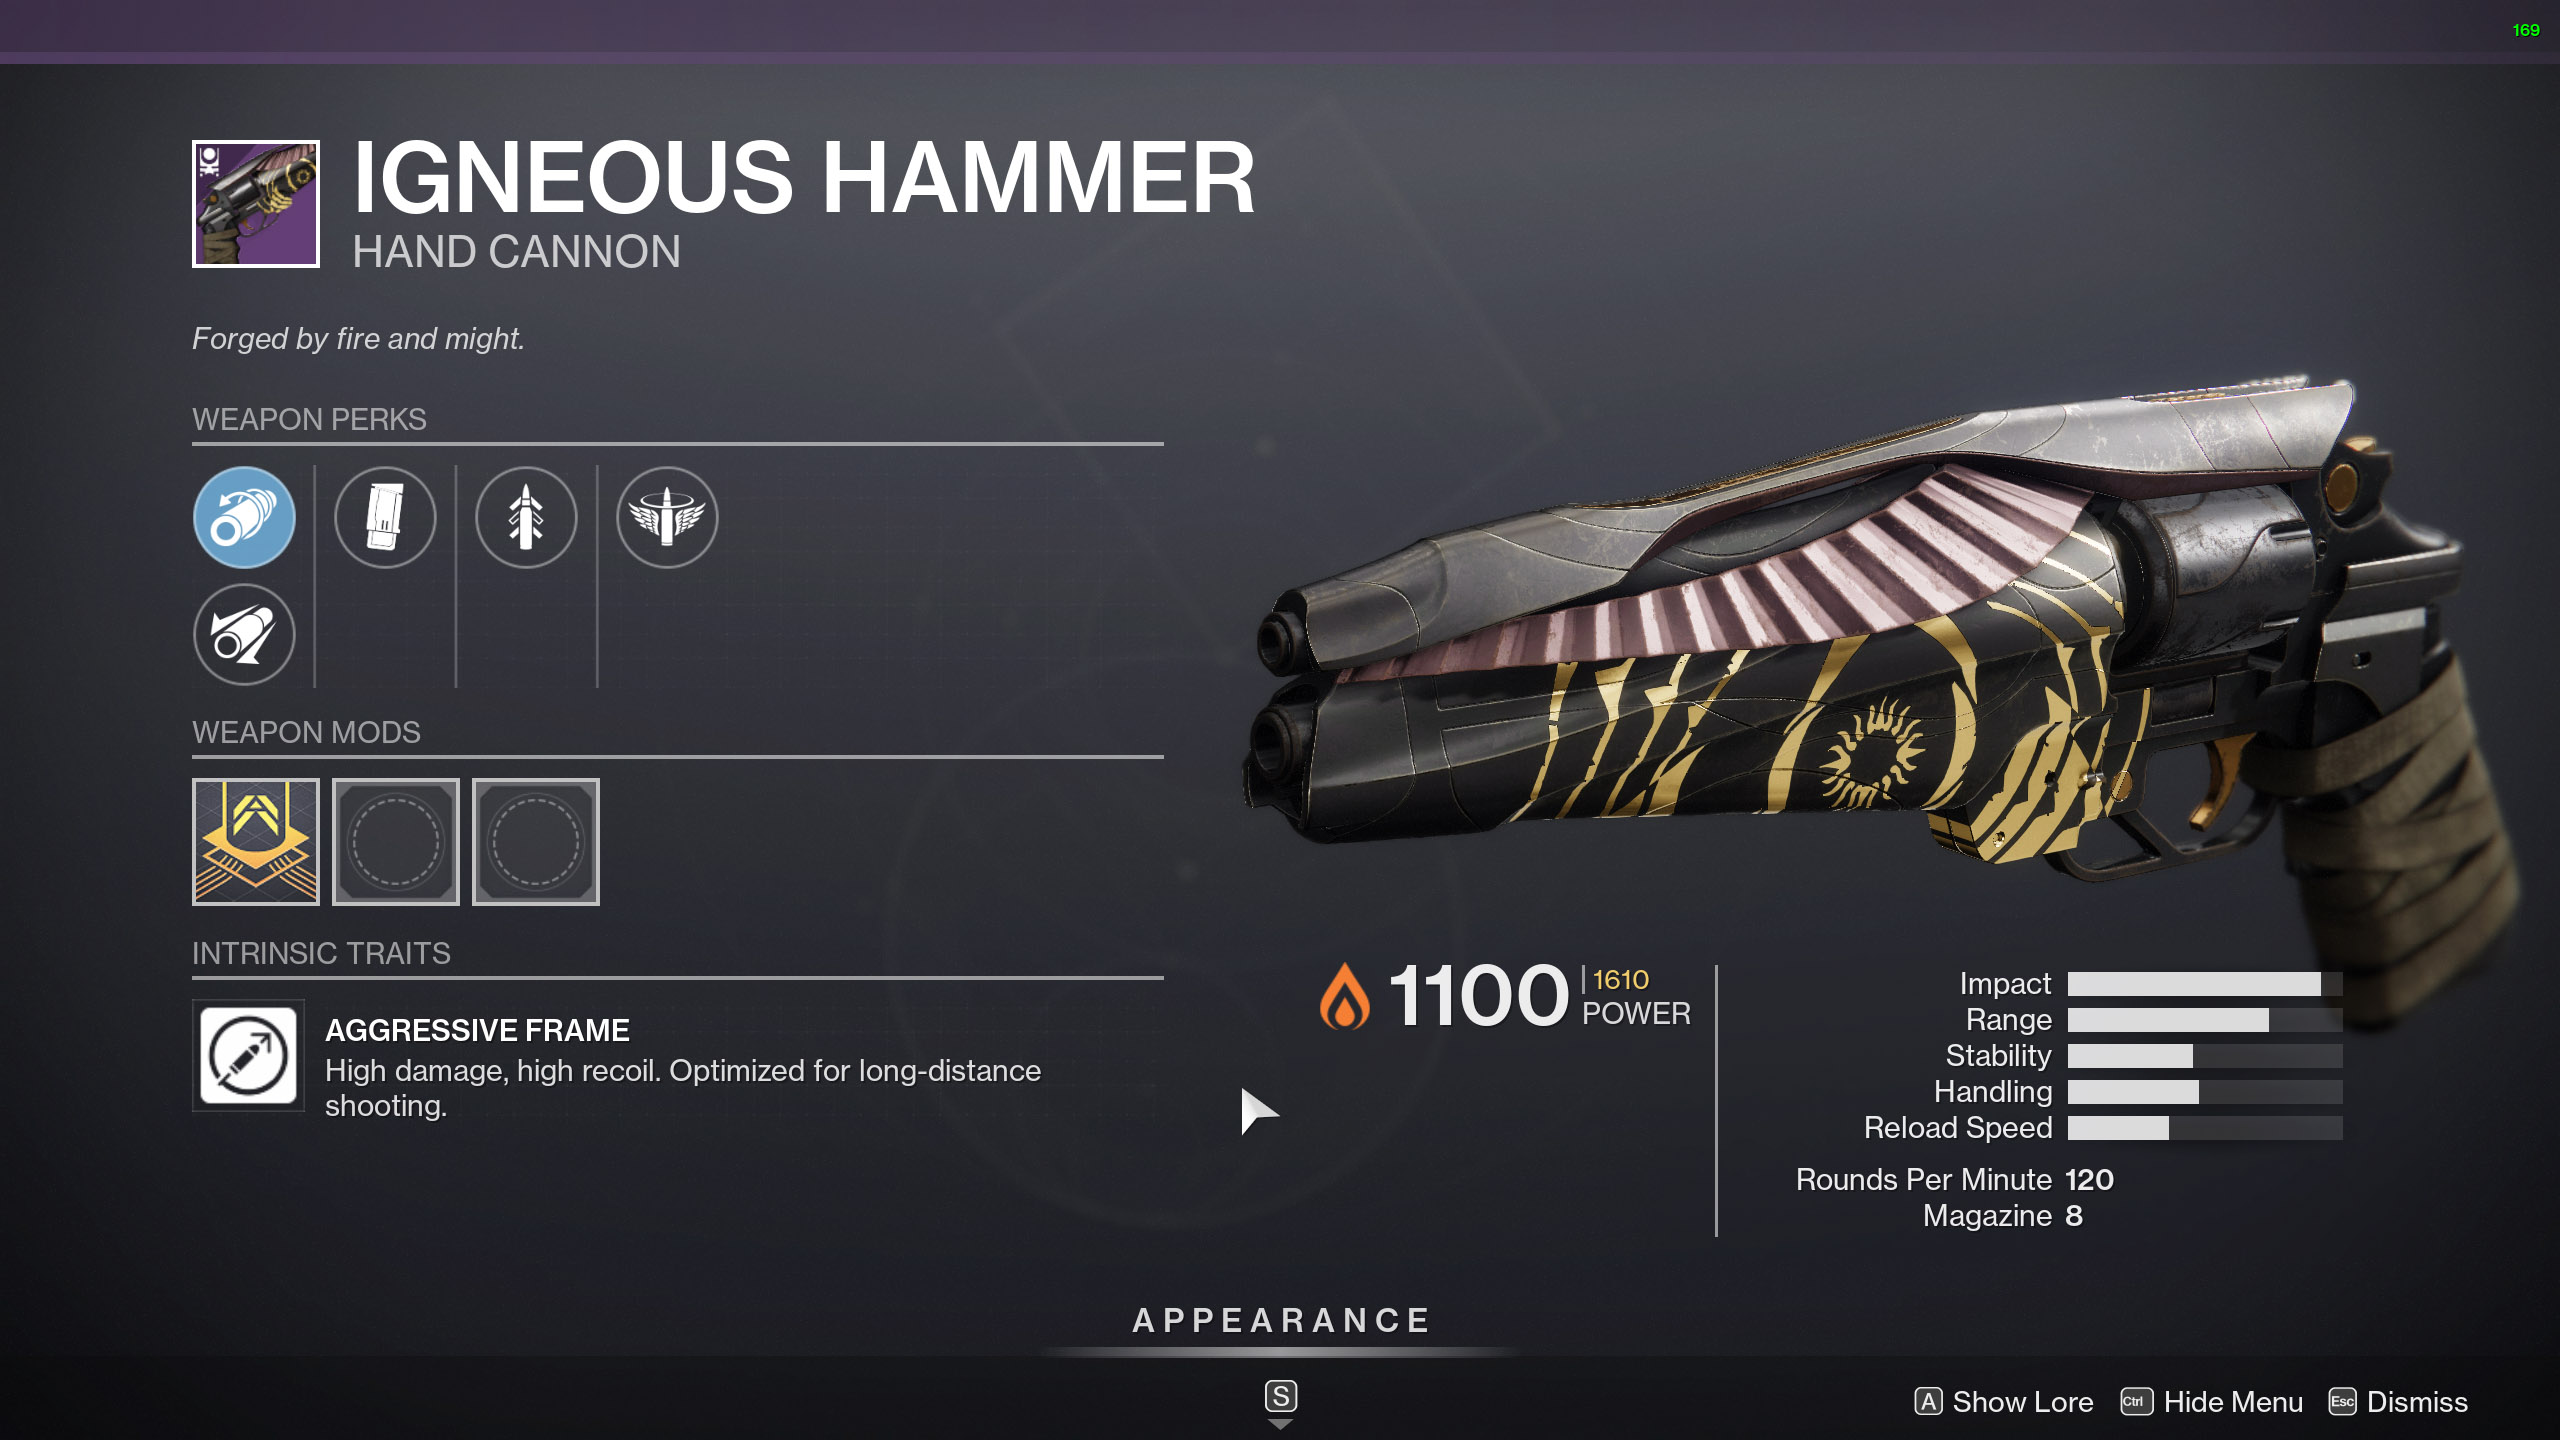 A look at the Igneous Hammer Hand Cannon in Destiny 2.